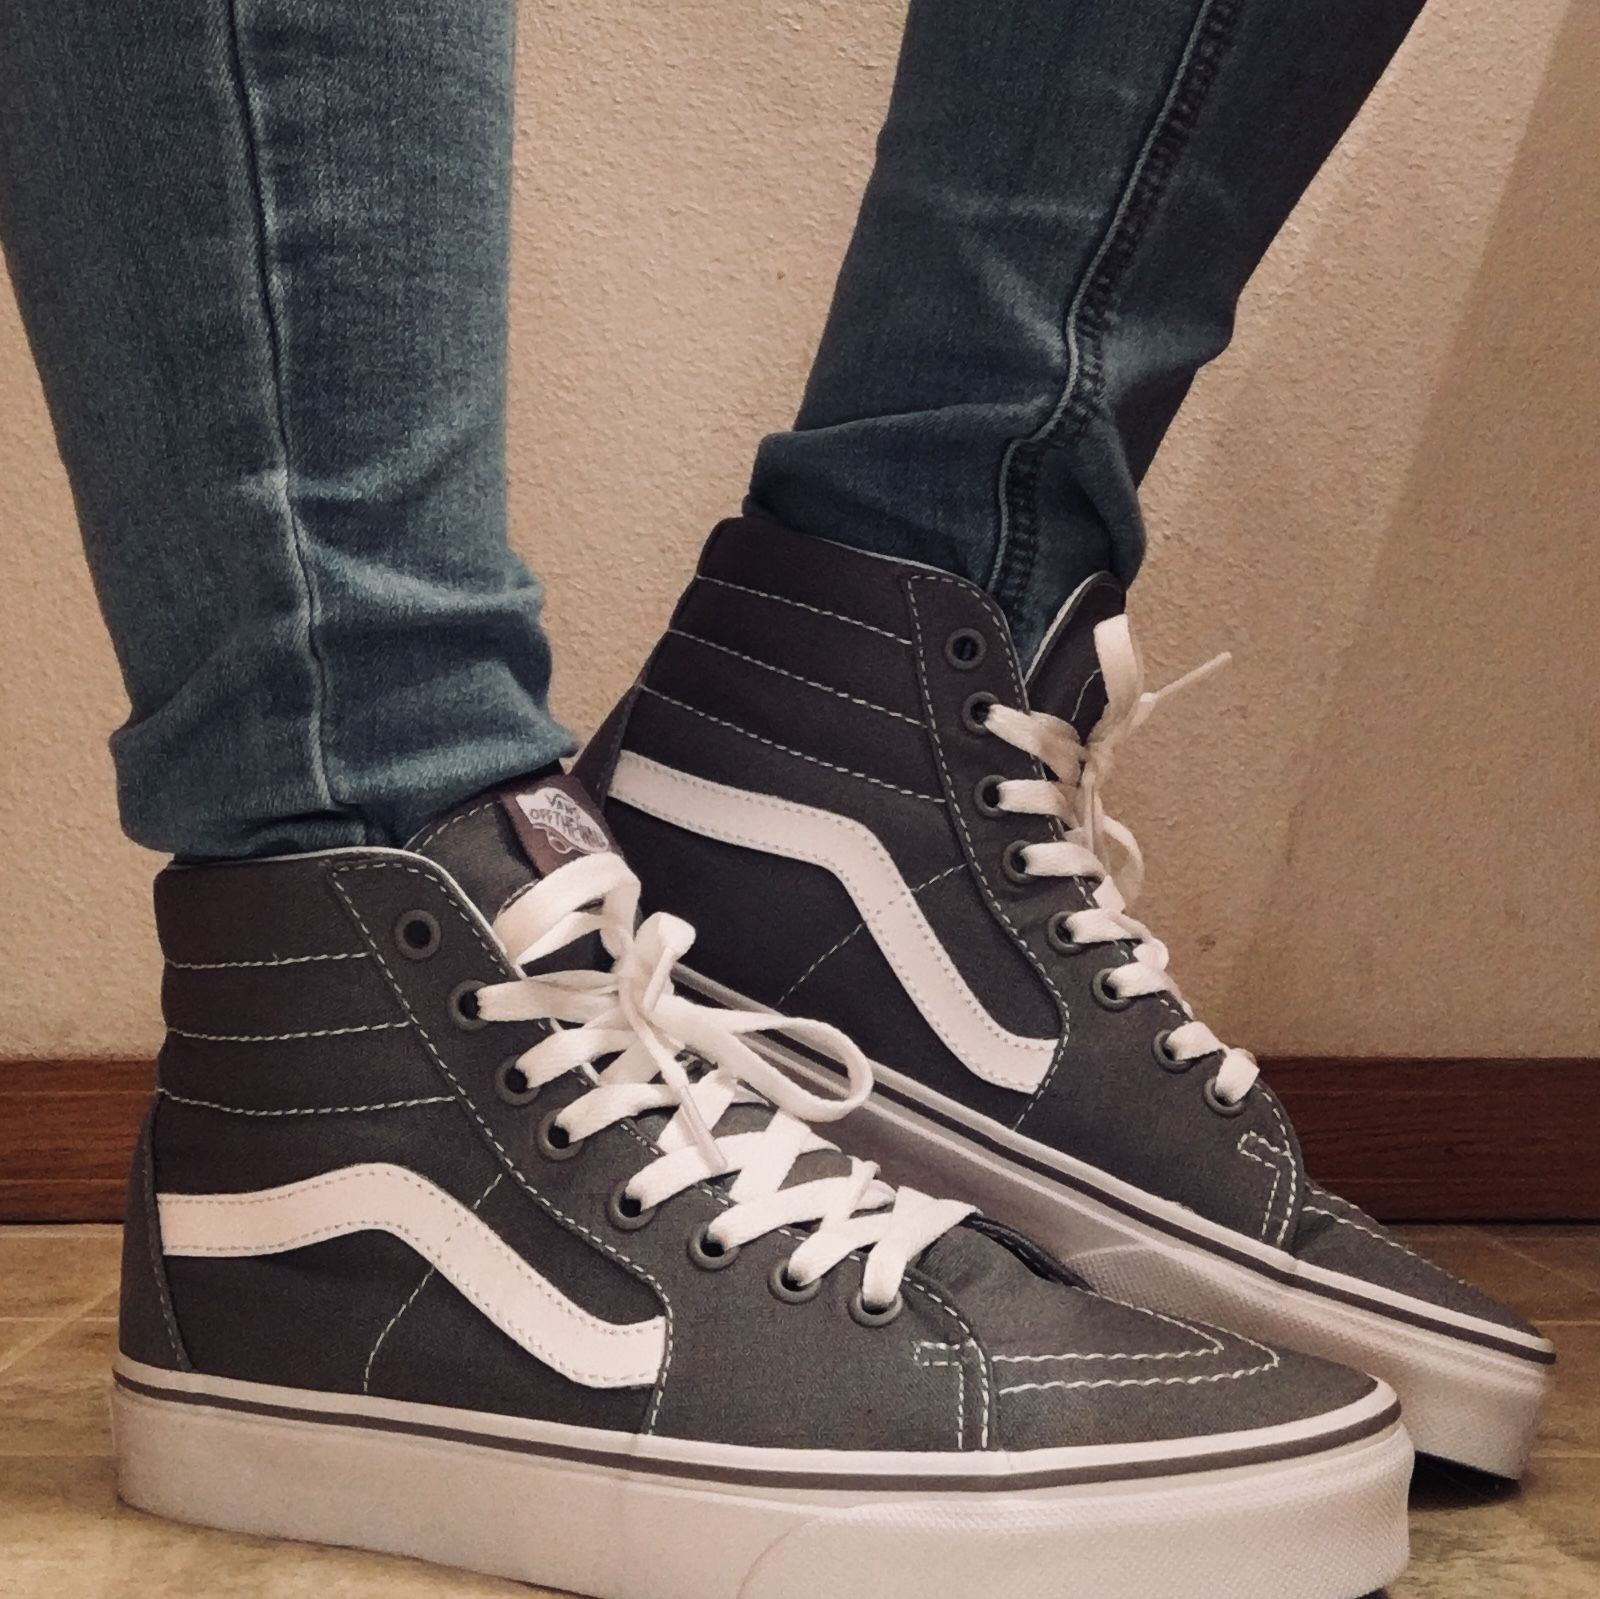 0edb3b85b2 gray grey vans - high tops - jeans - aesthetic - photography - tumblr